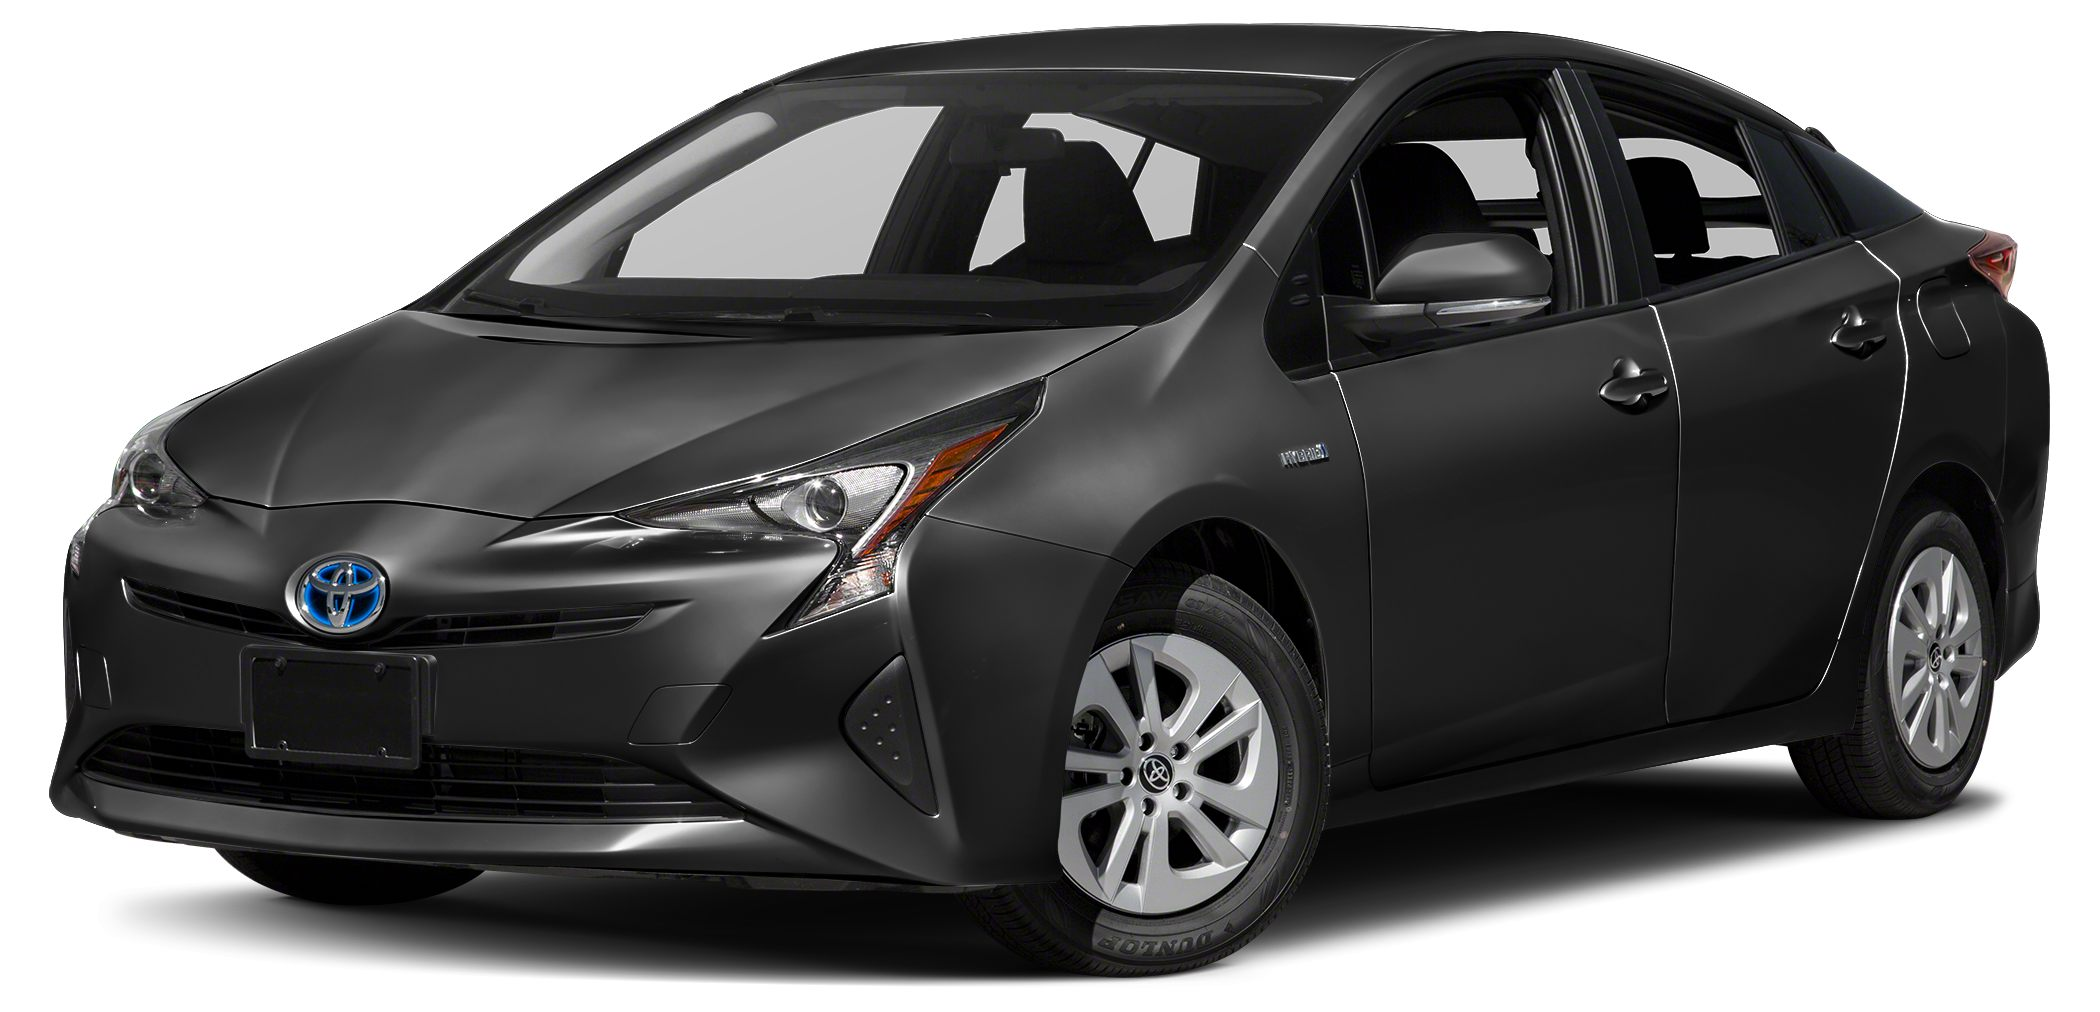 2018 Toyota Prius Two Magnetic Gray Two Preferred Owners Portfolio 18L 4-Cylinder DOHC 16V VVT-